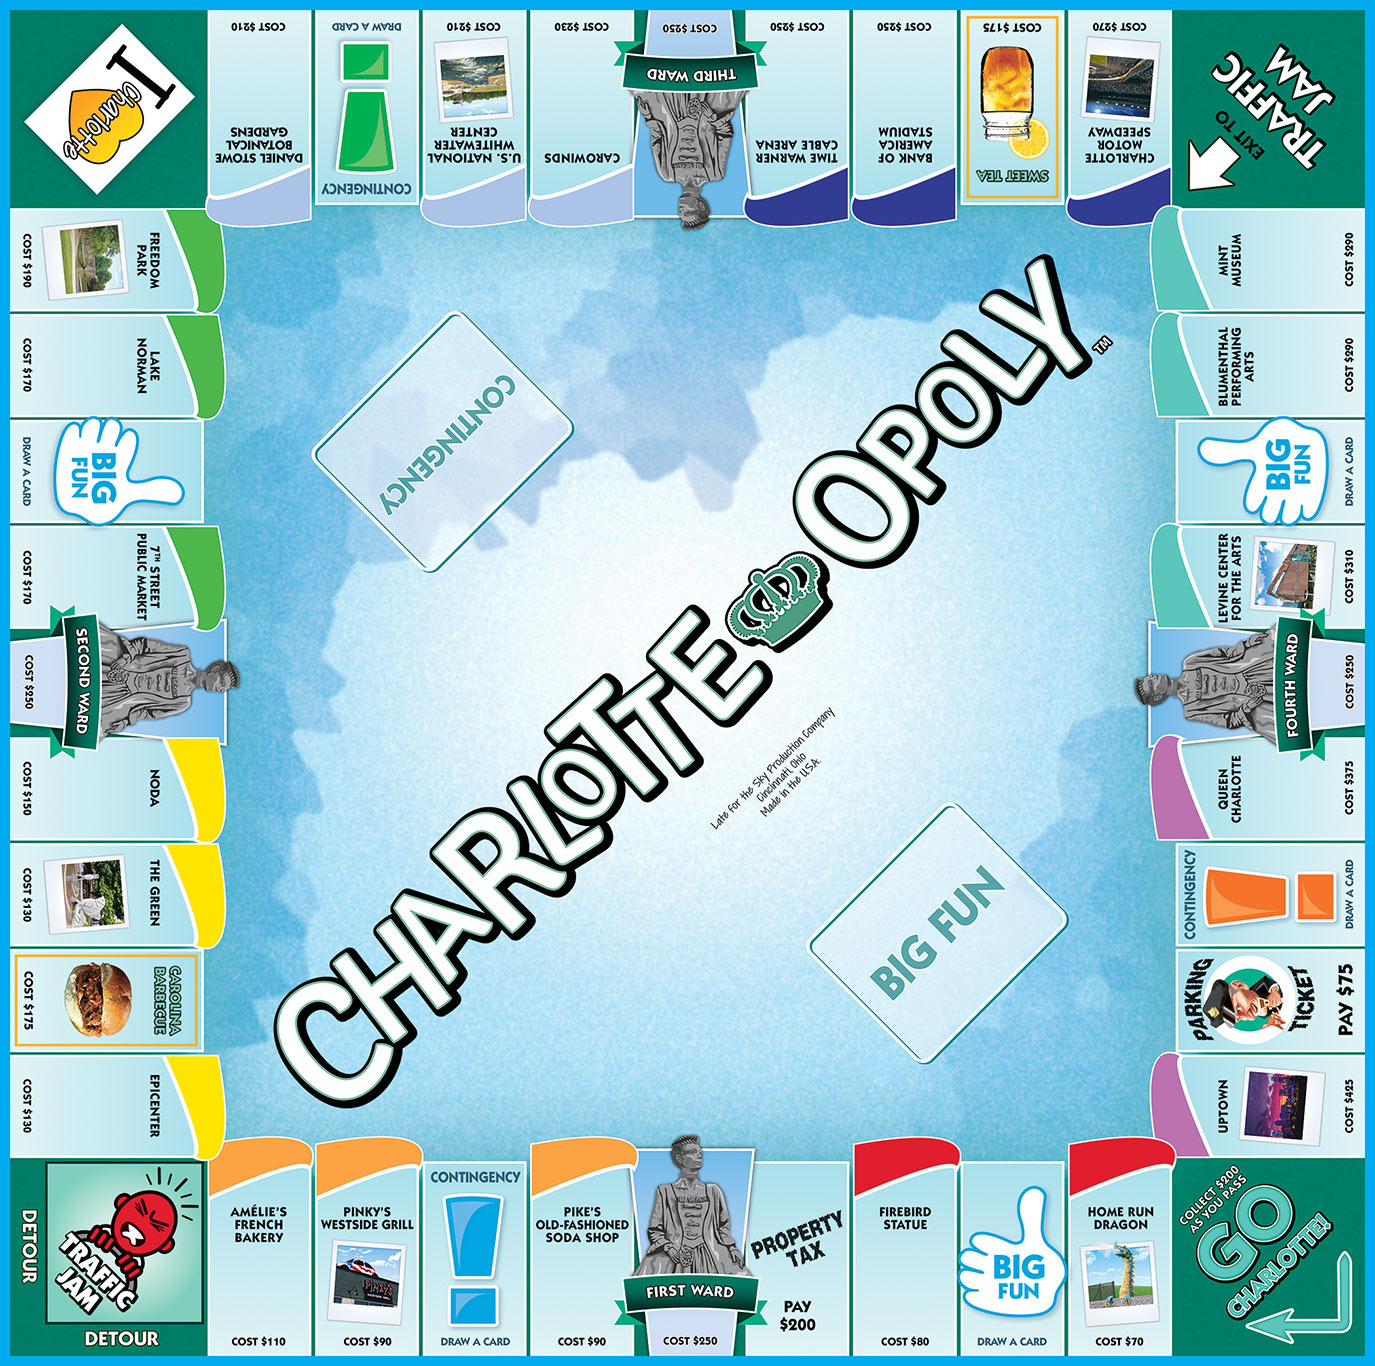 CHARLOTTE-OPOLY Board Game